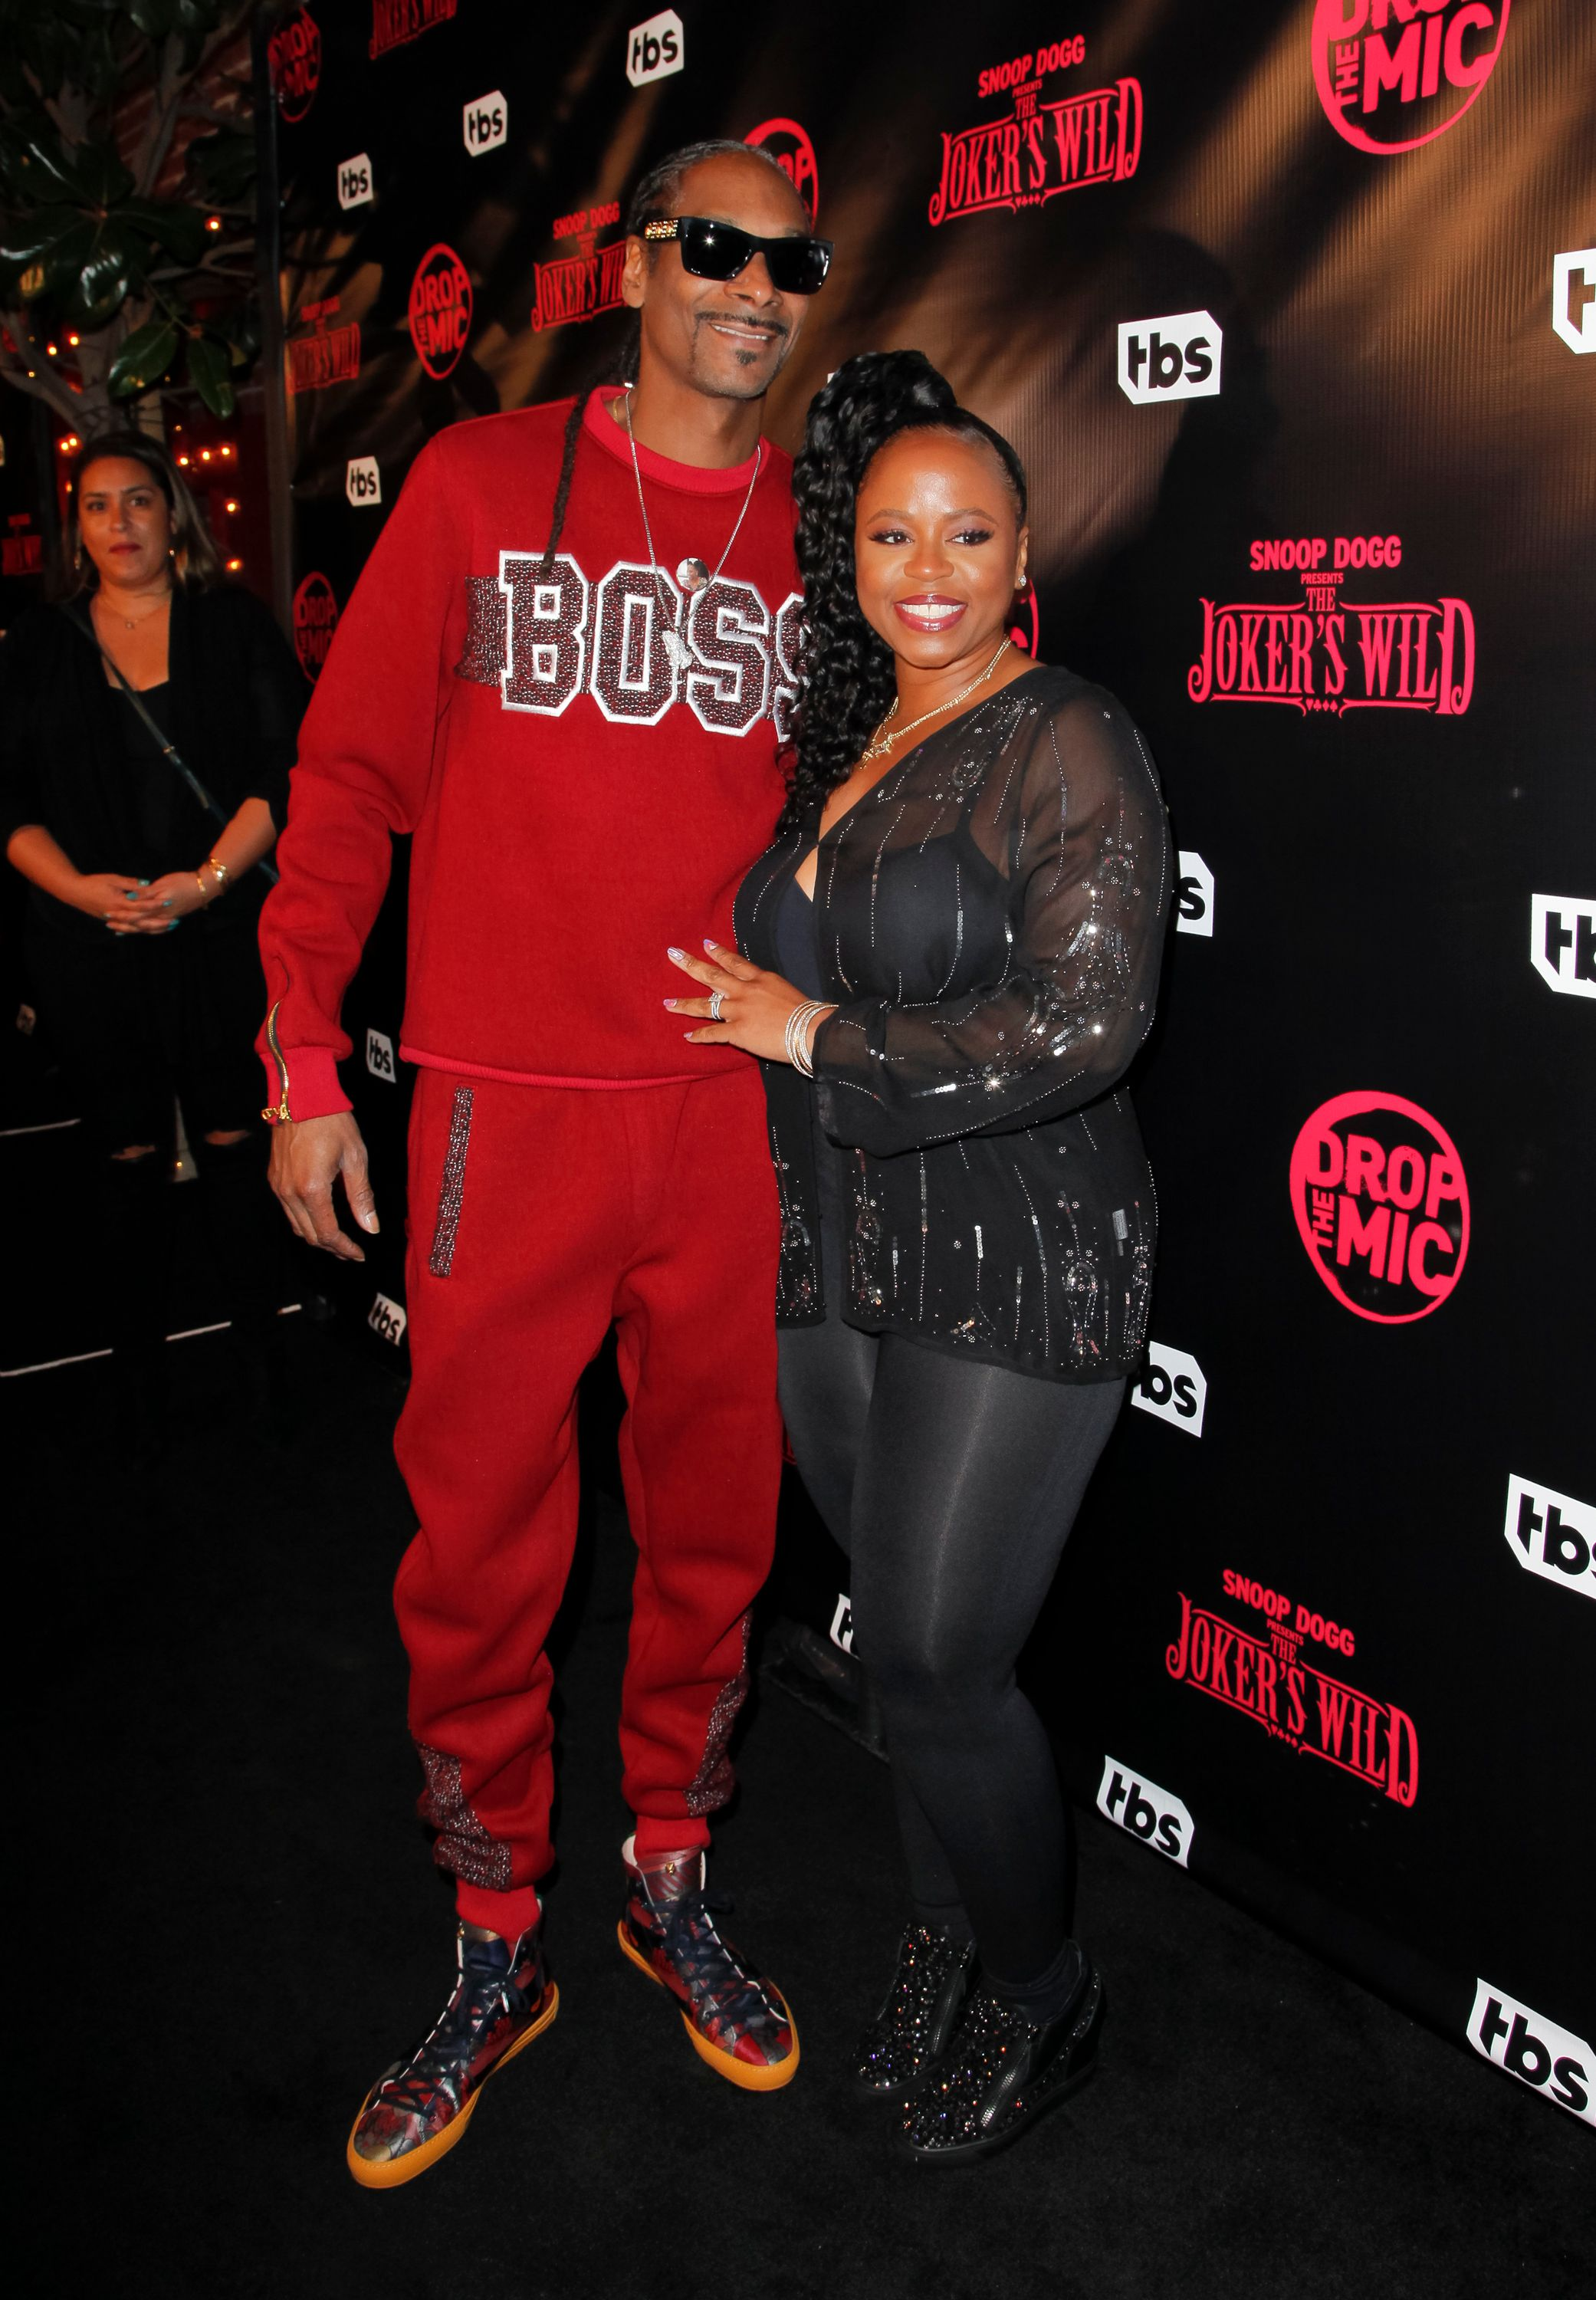 Snoop Dogg and Shante Broadus at the premiere for TBS's 'Drop The Mic' and 'The Joker's Wild' at The Highlight Room on October 11, 2017. | Photo: Getty Images